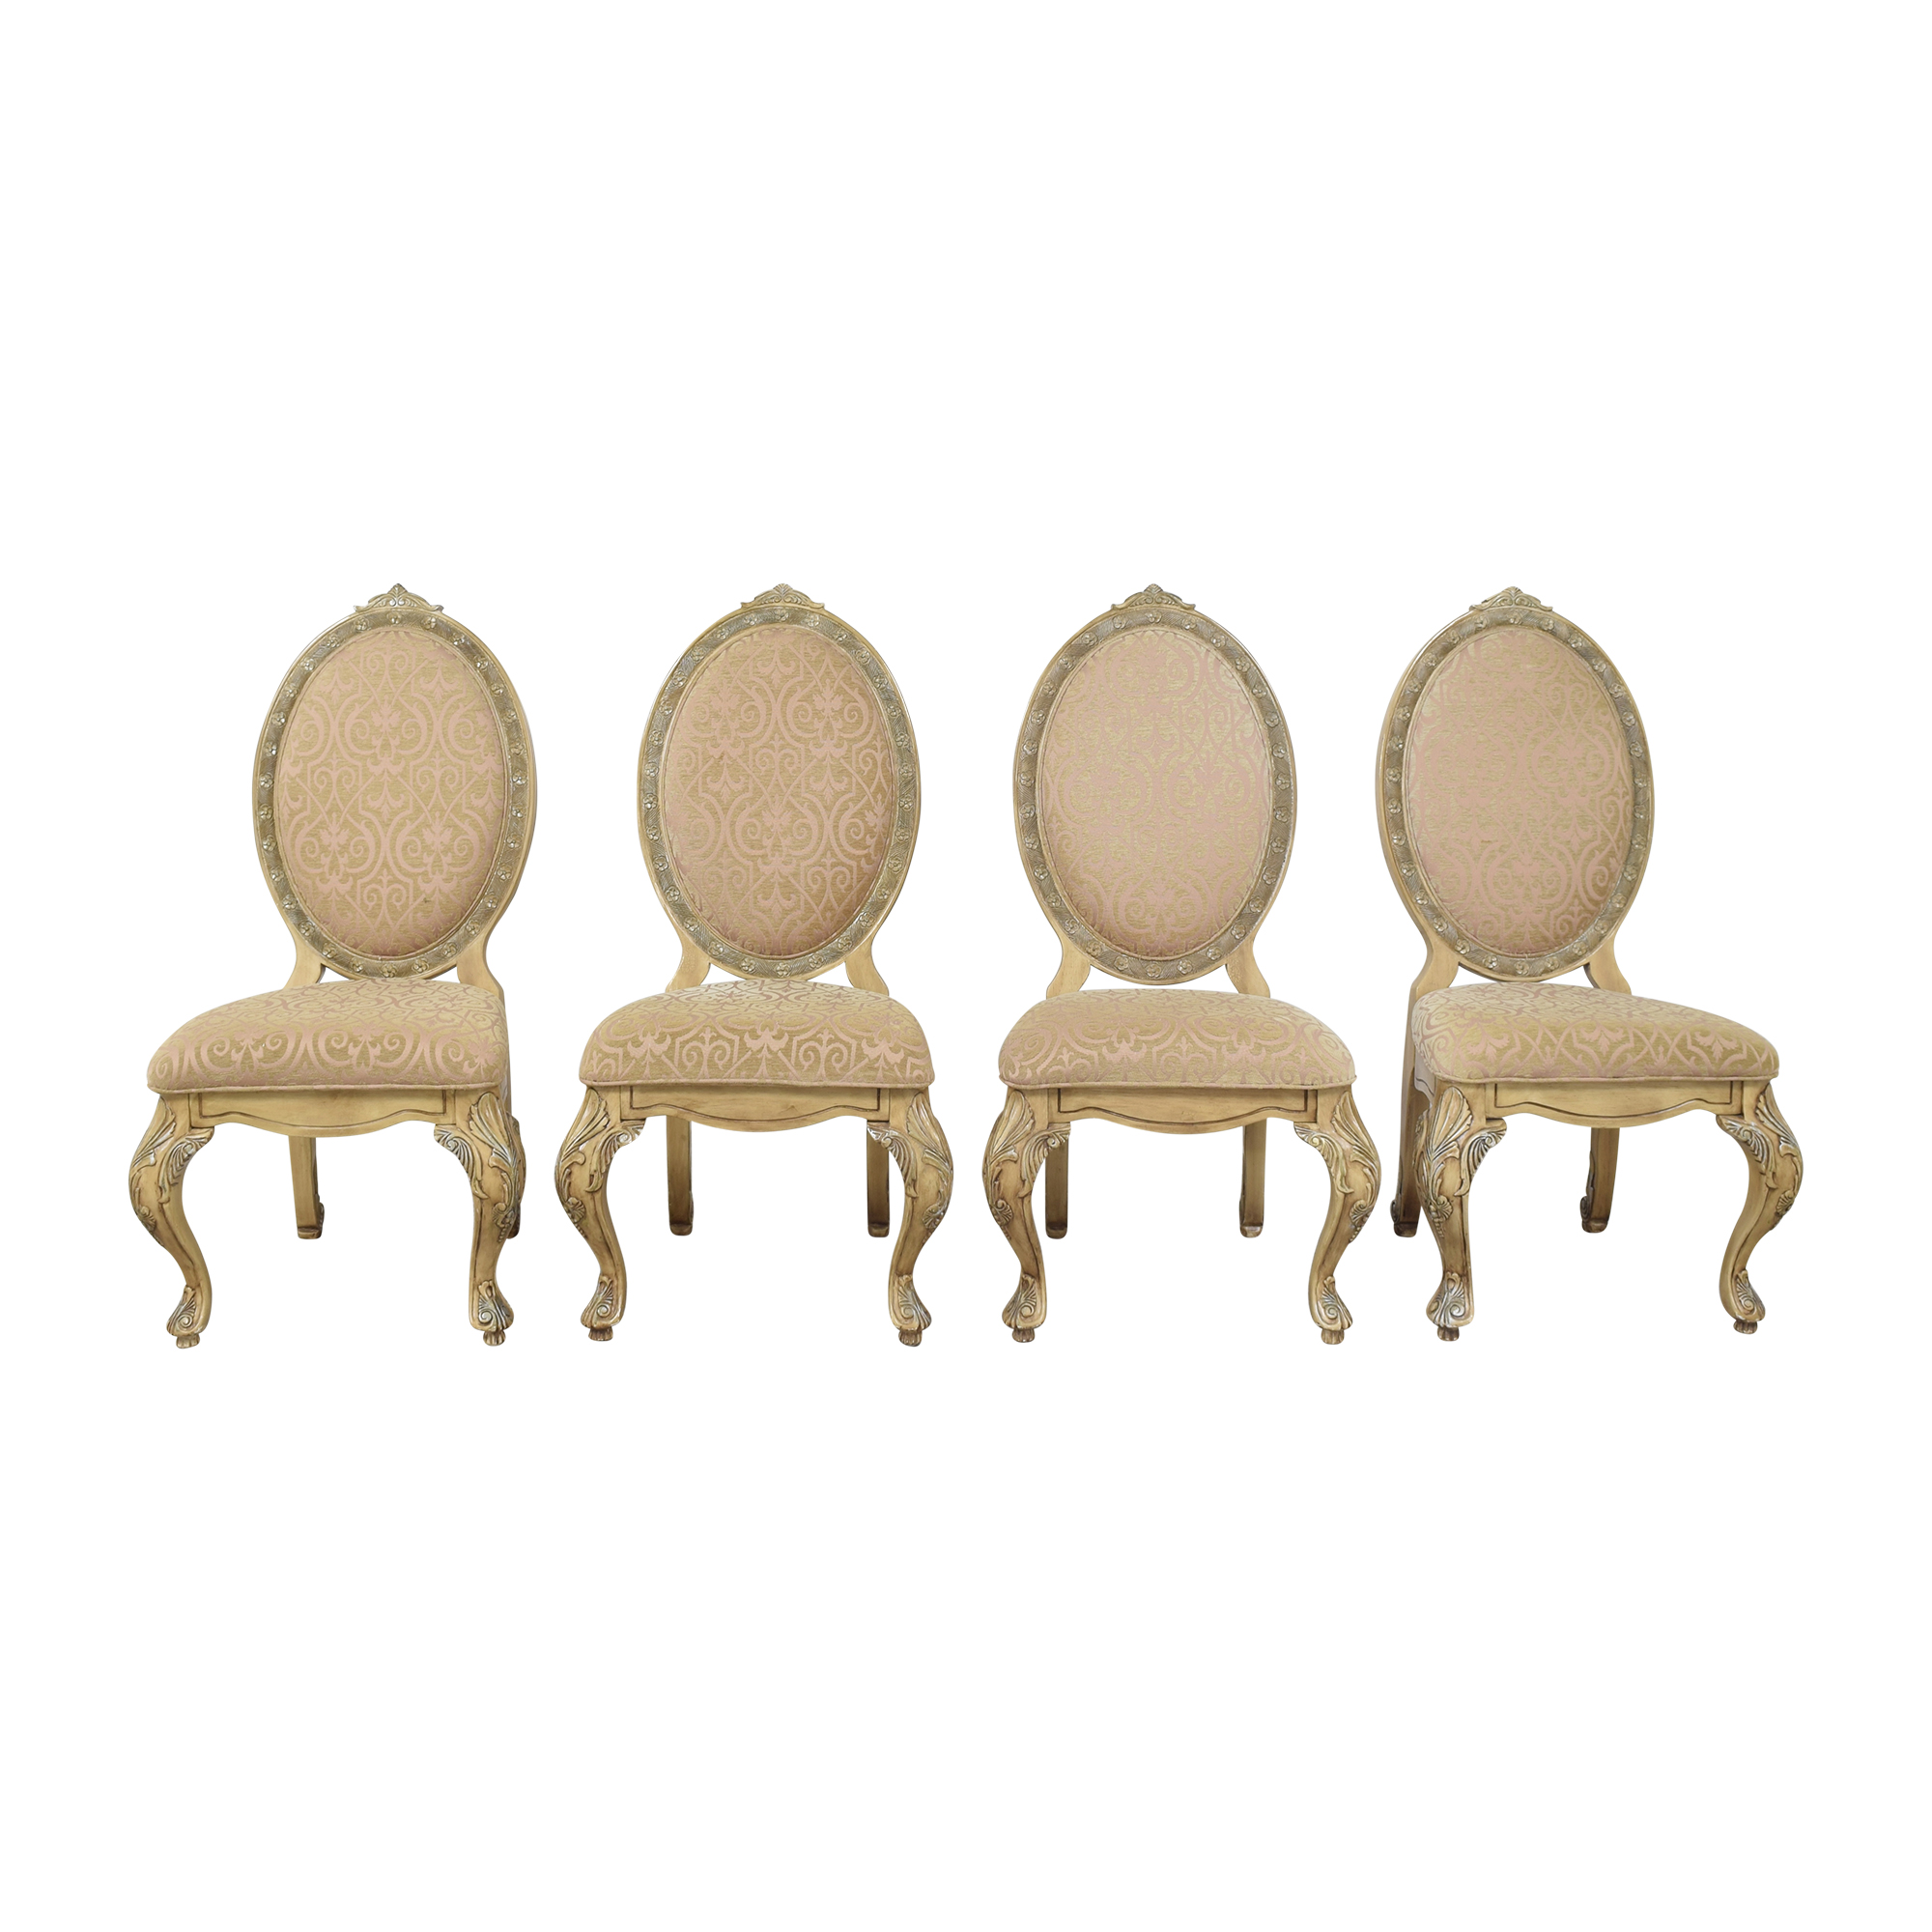 AICO AICO Lavelle Side Dining Chairs pa